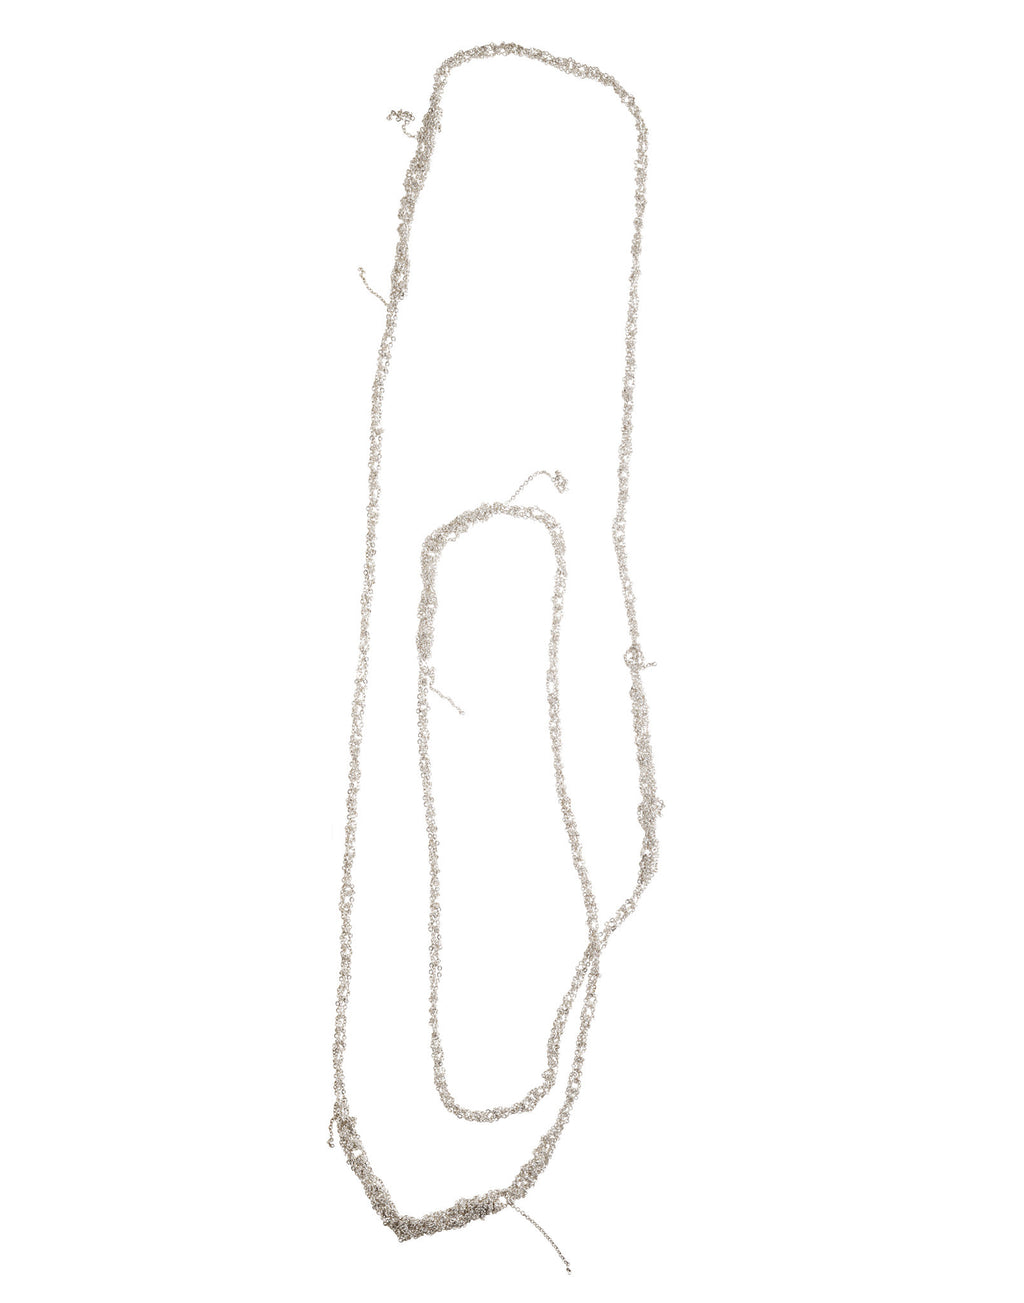 4-Tone Simple Necklace in Silver